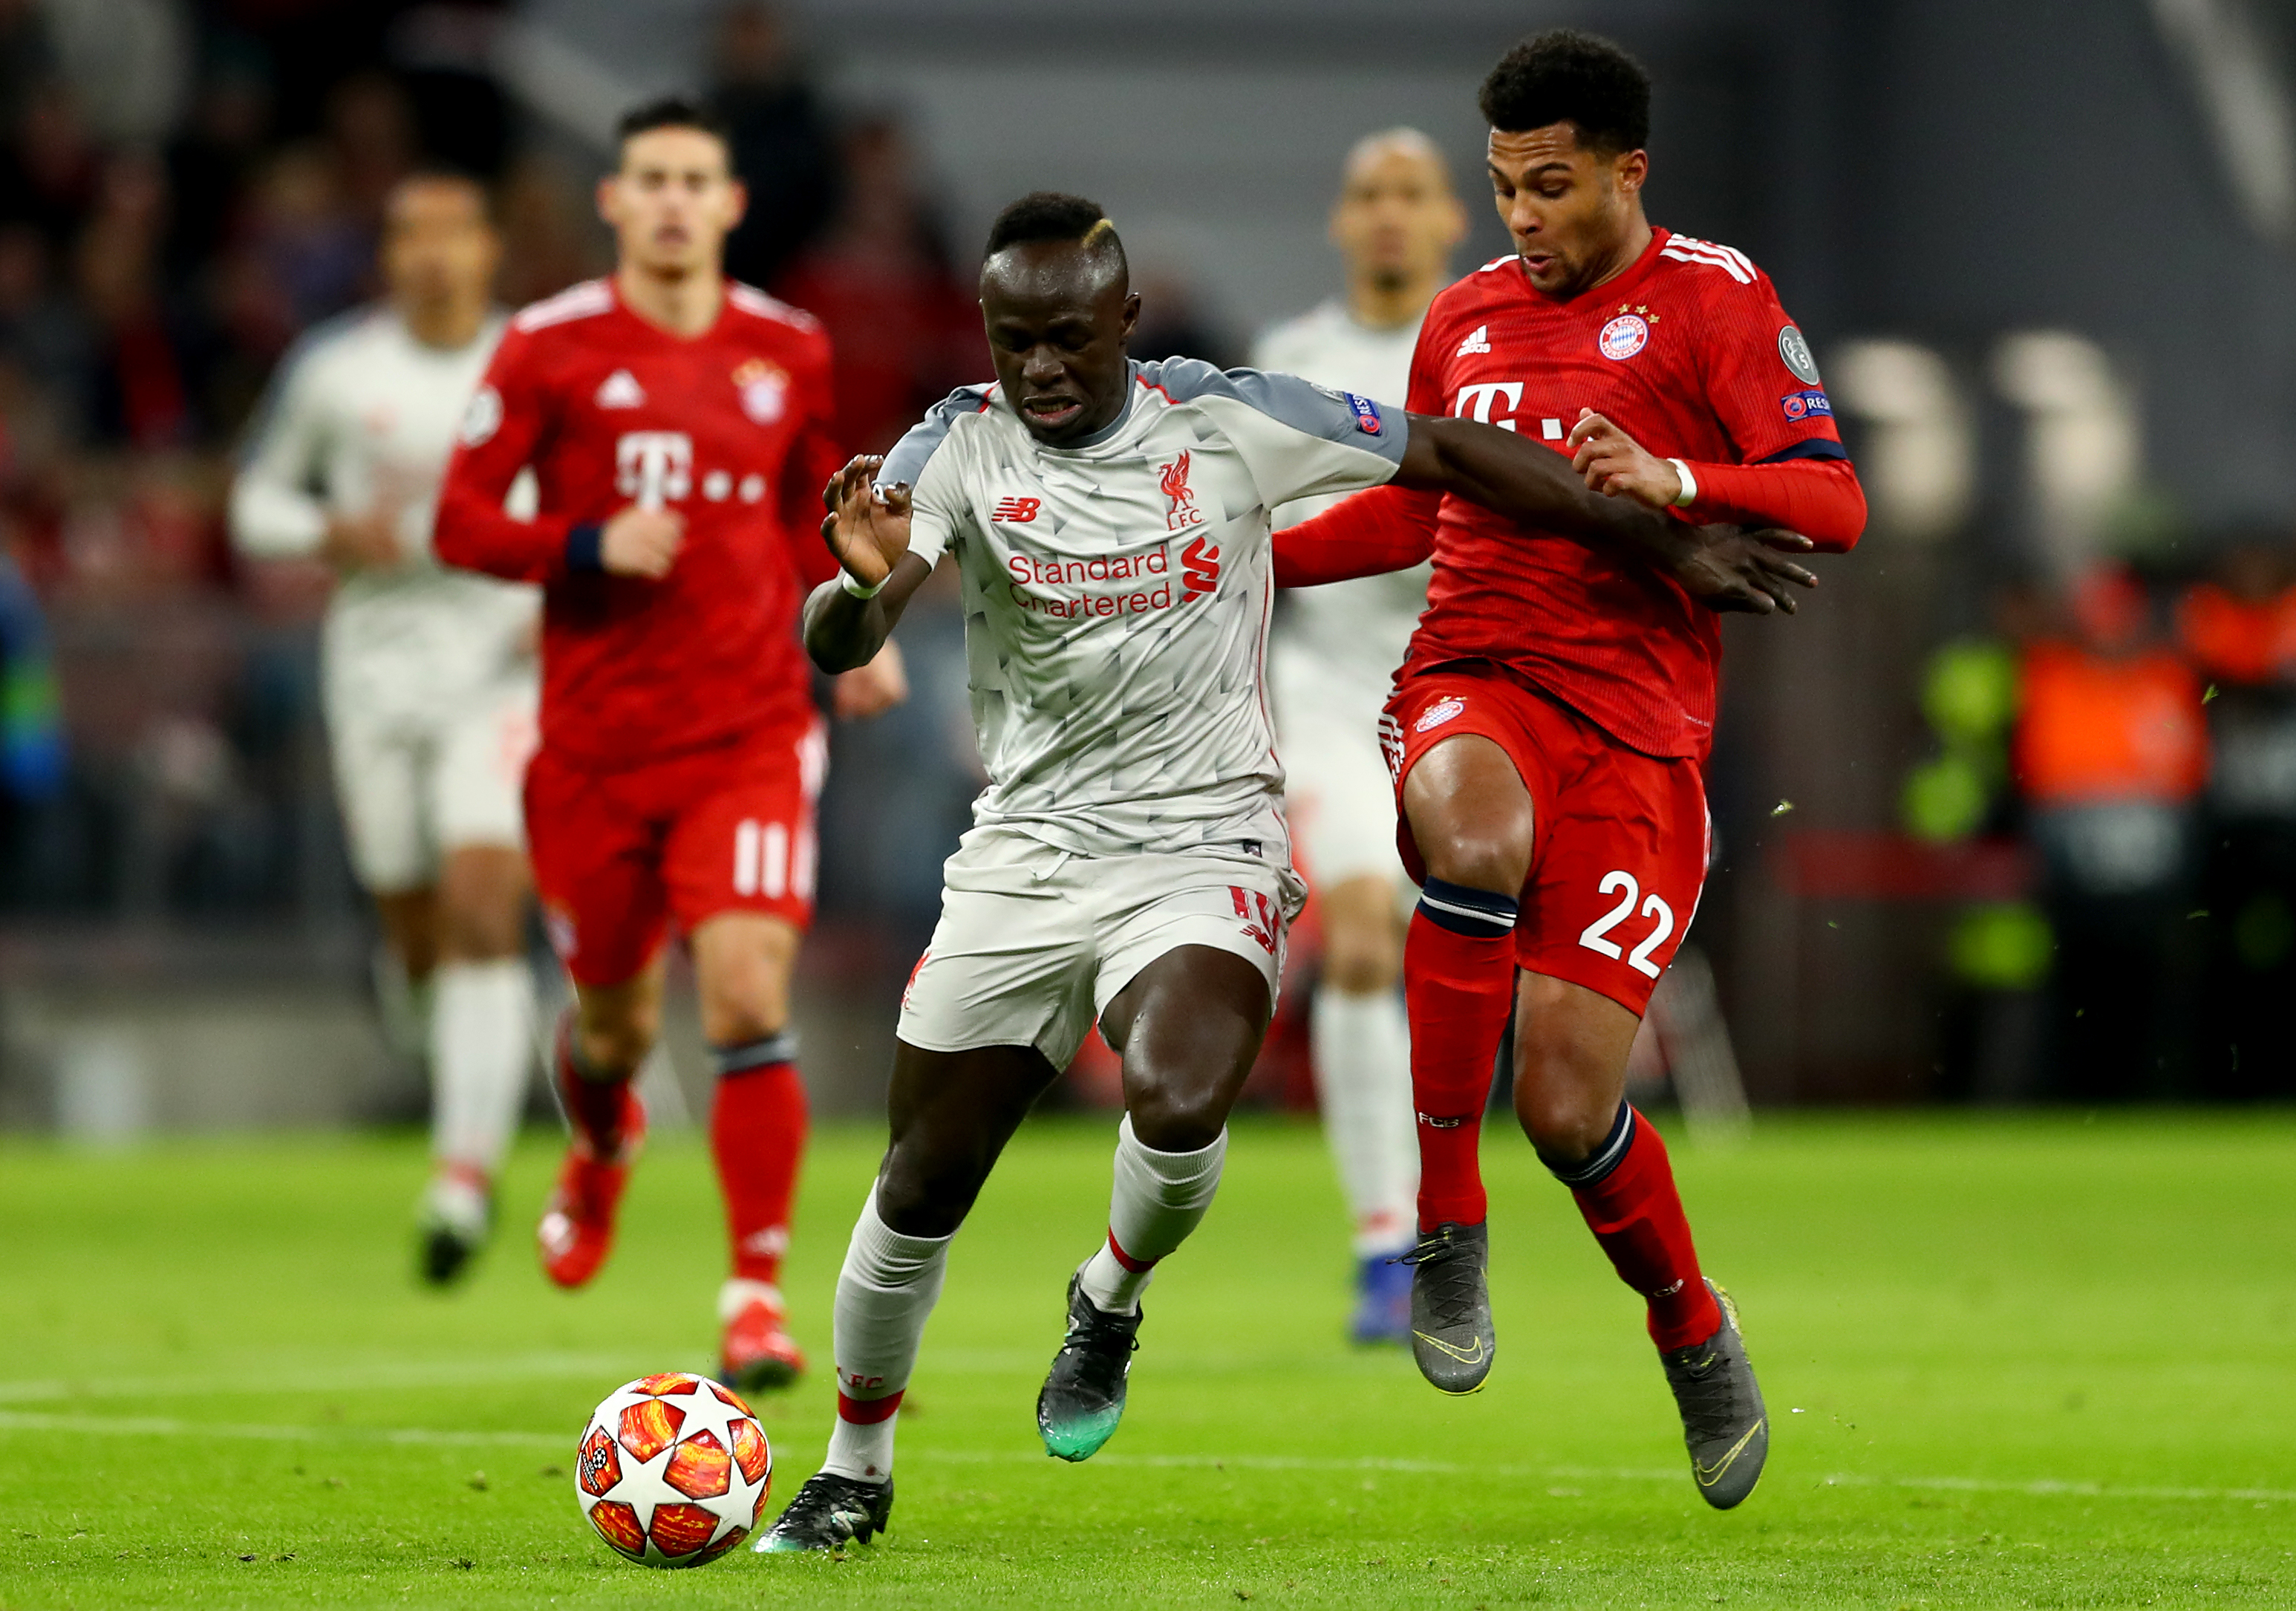 Real Mardid were impressed by Mane's performance against Bayern Munich in the Champions League. (Photo courtesy: AFP/Getty)